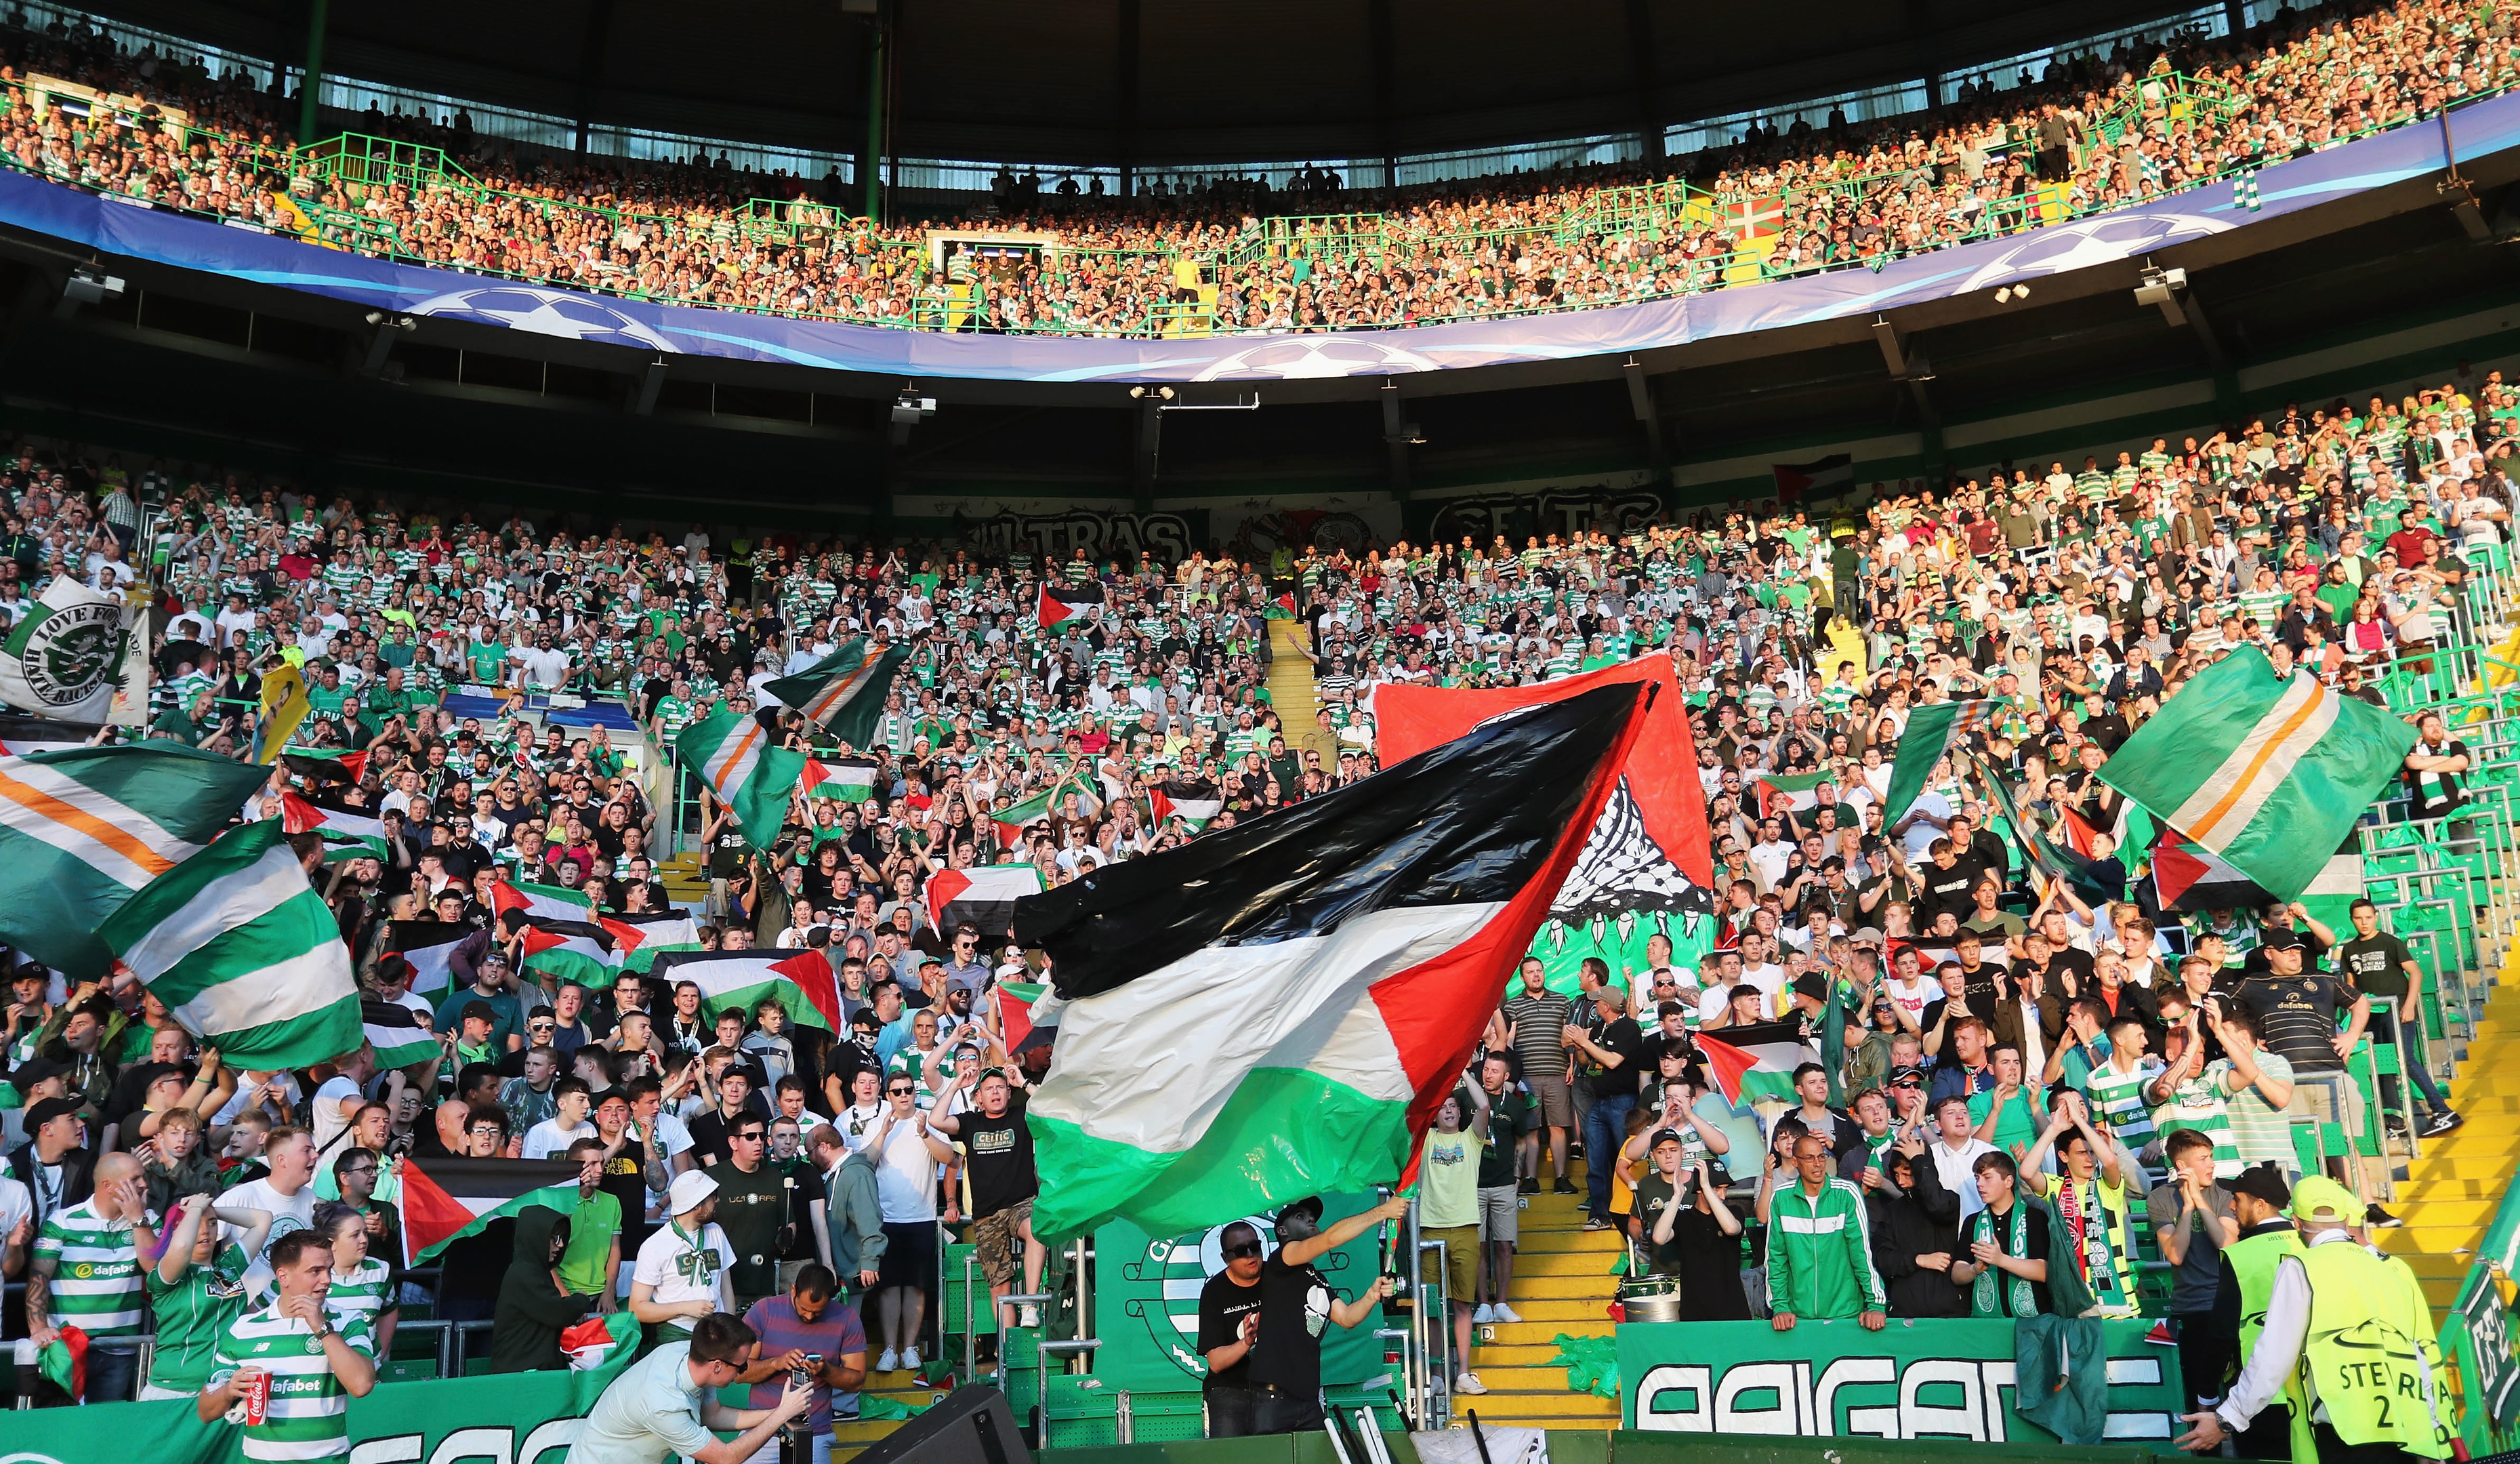 The Palestinian flag is waved by fans during the match between Celtic and Hapoel Beer-Sheva (Steve Welsh/Getty Images)